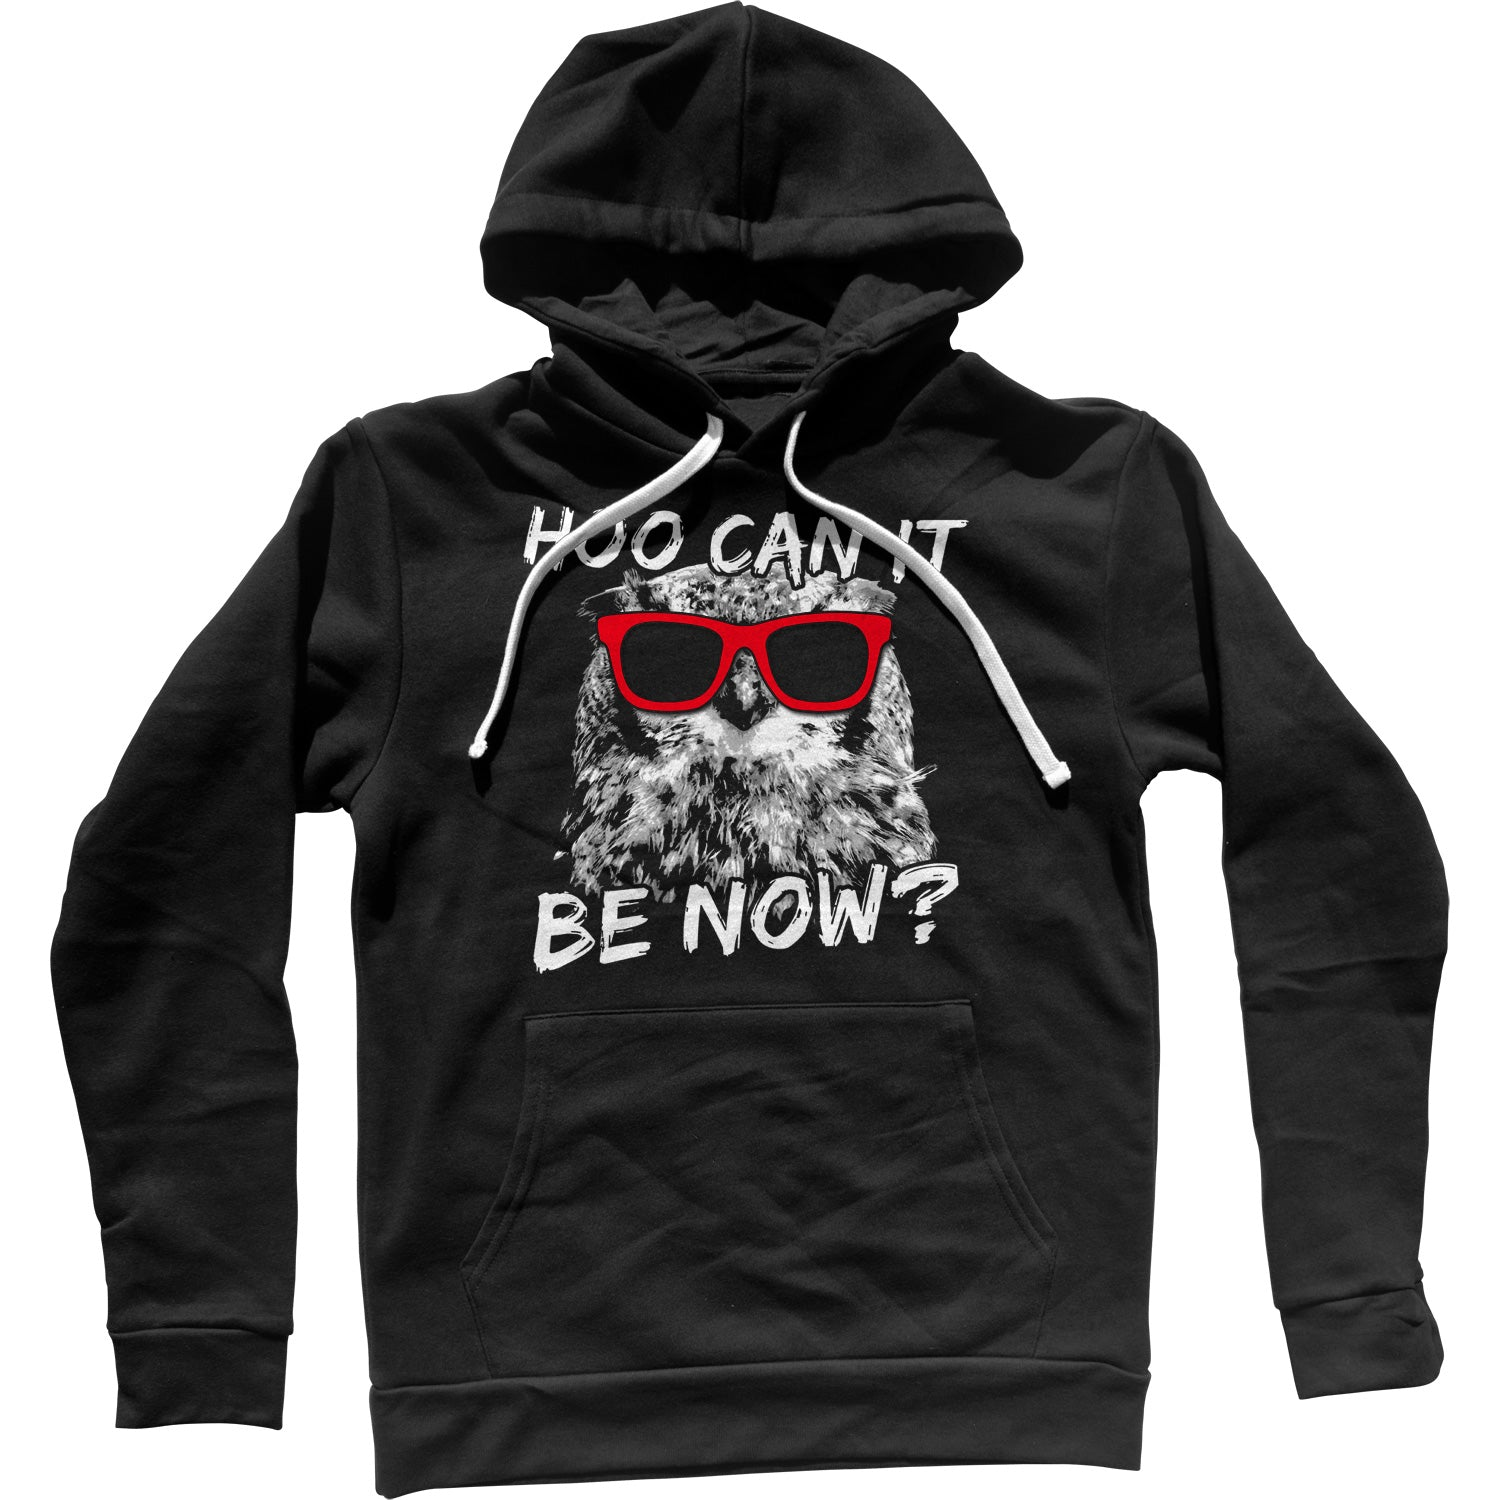 Hoo Can It Be Now Funny Owl Unisex Hoodie